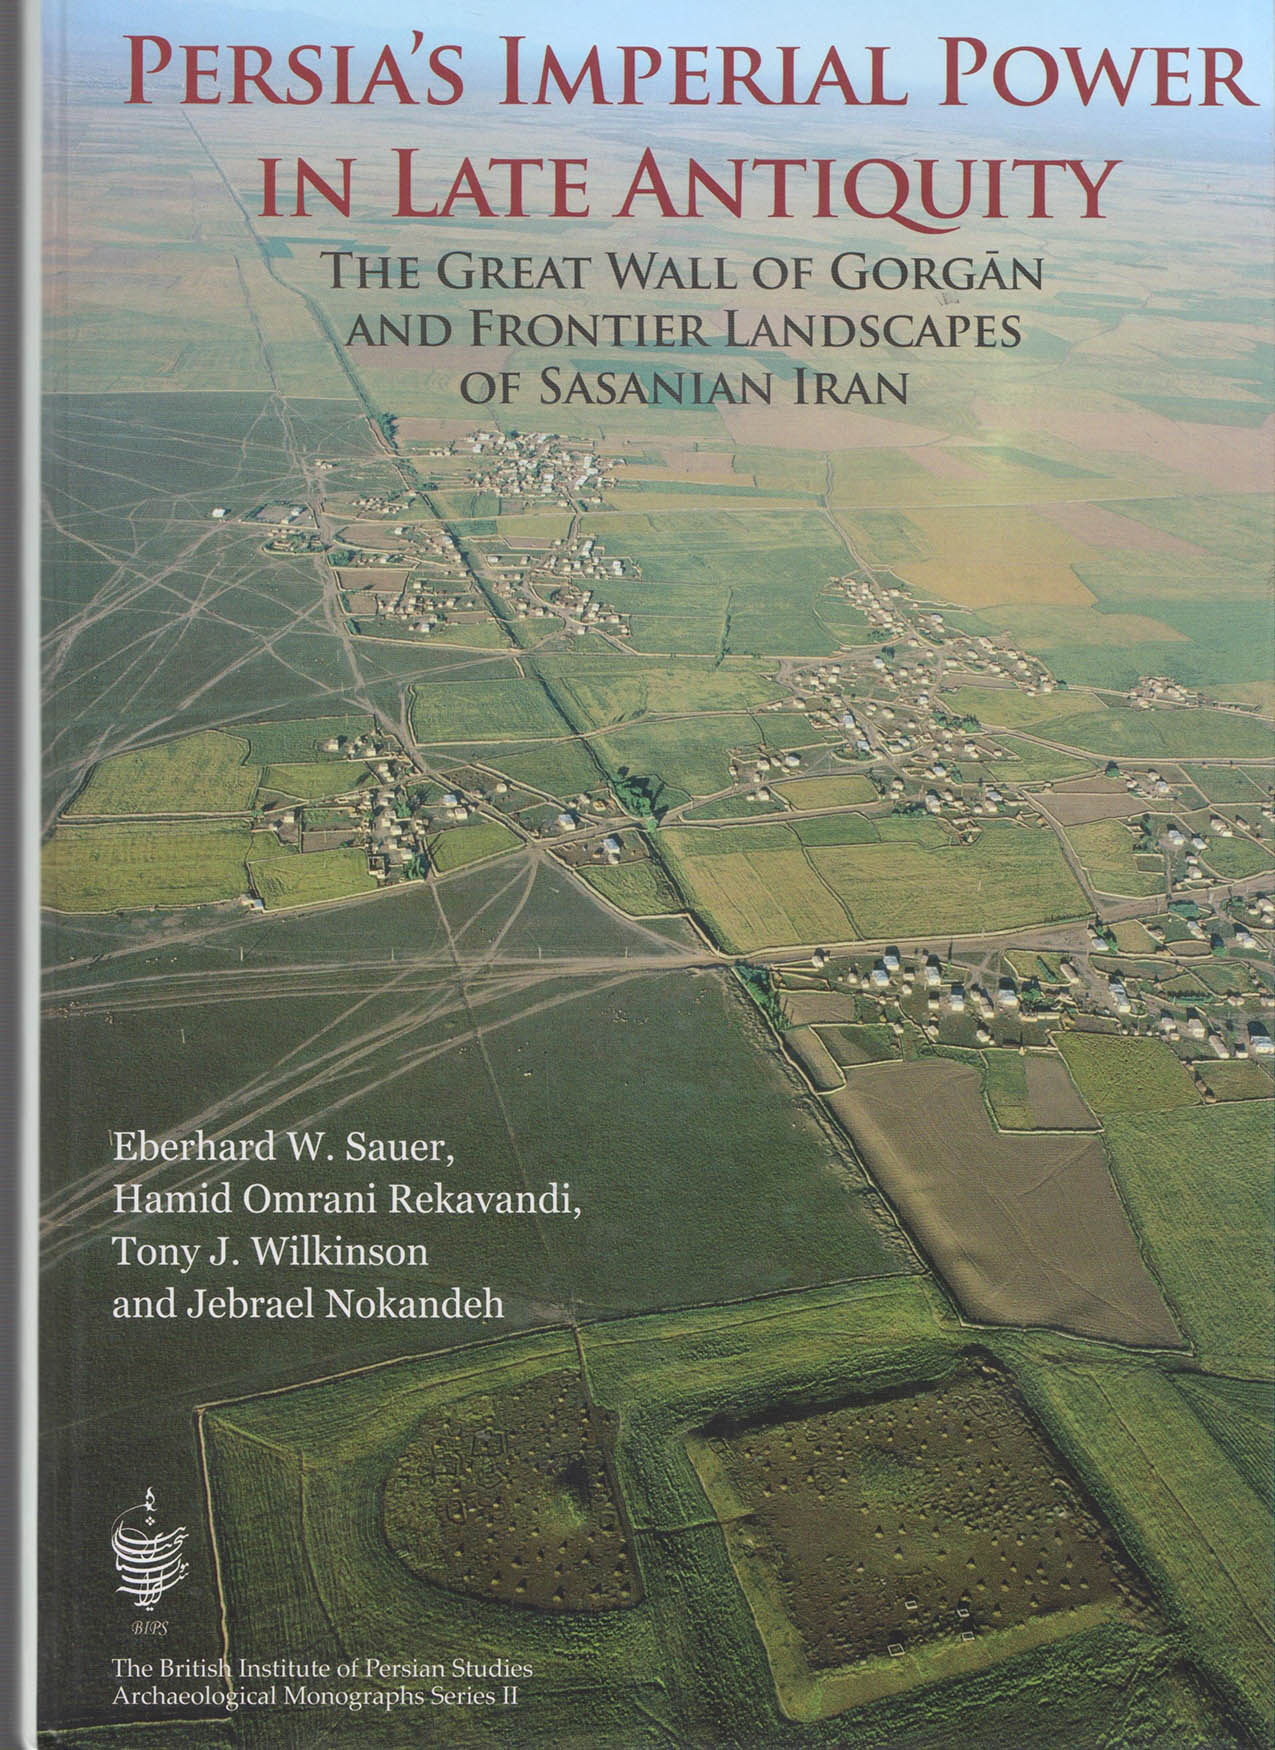 PERSIA΄S IMPERIAL POWER IN LATE ANTIQUITY THE GREAT WALL OF GORGAN AND  FRONTIER LANDSCAPES OF SASANIAN IRAN